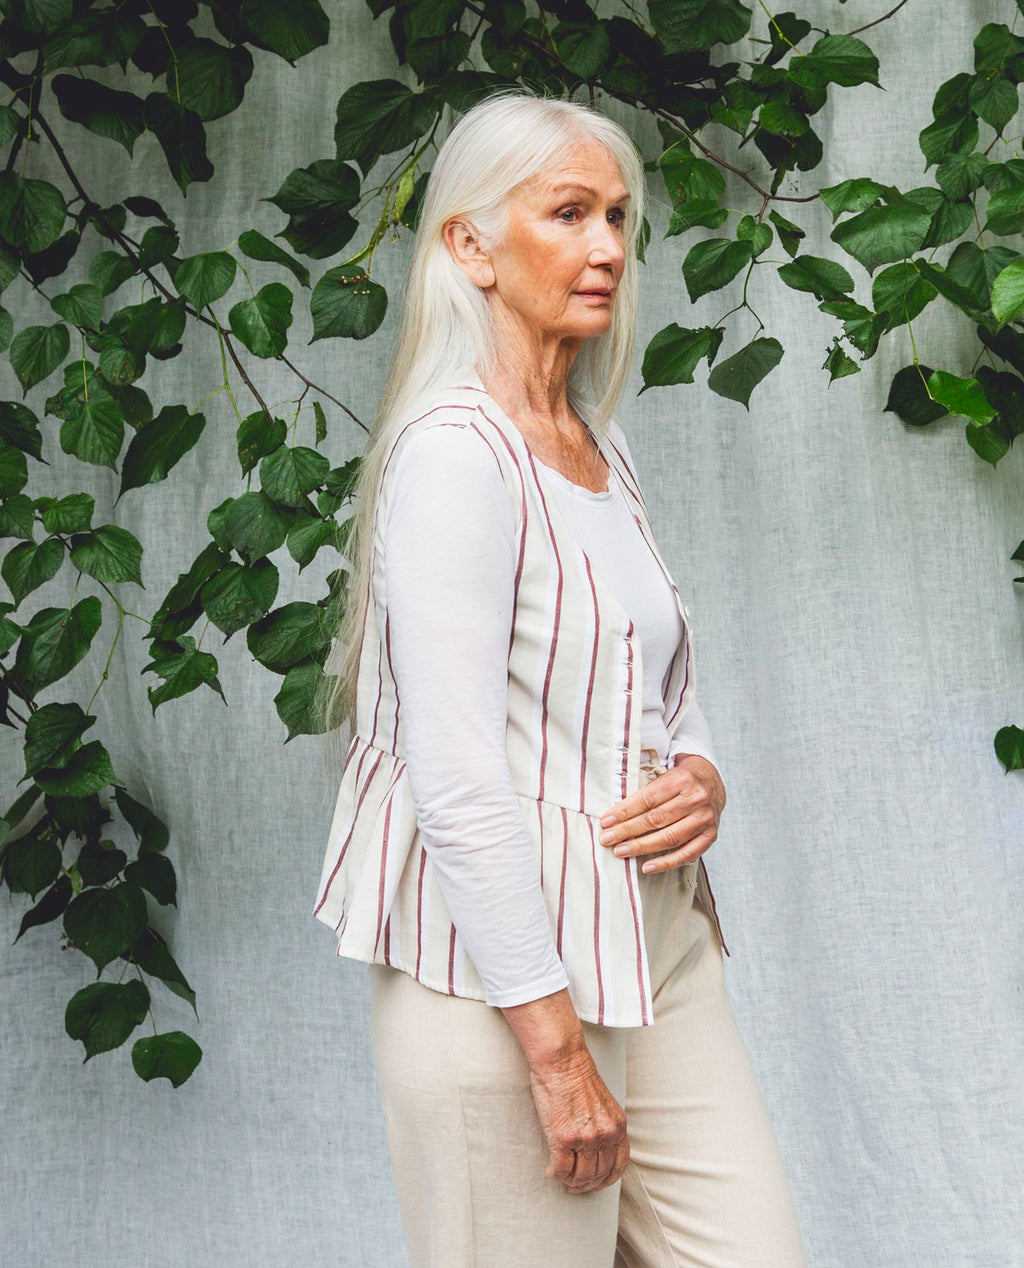 Tamsin-Sue Linen Blouse In Cream & Plum.